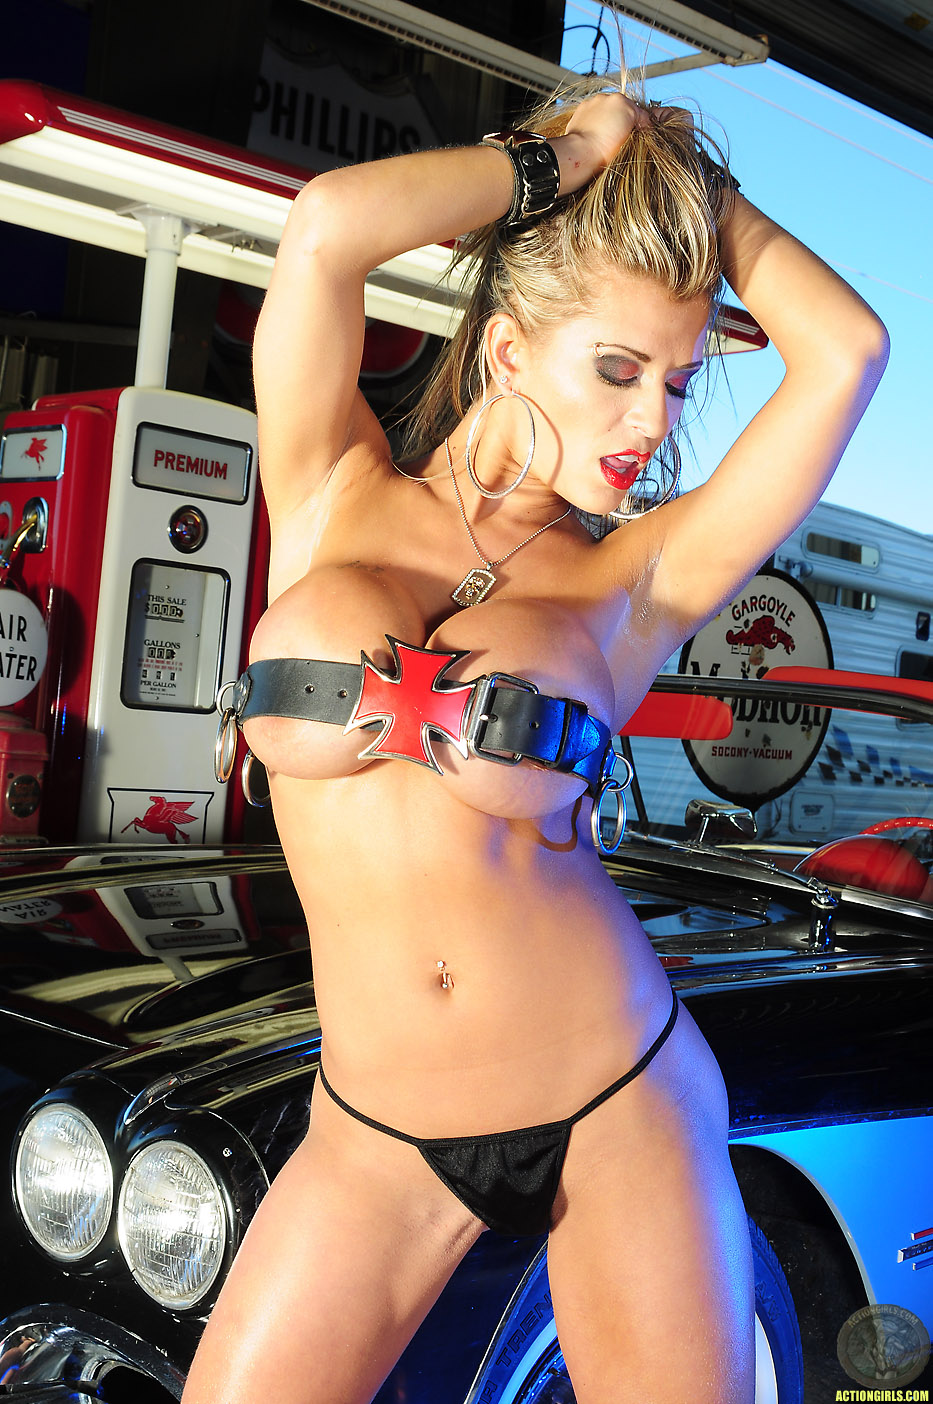 http://ww4.actiongirls.com/gallery55/Valerie-pics-ac/actiongirlsvalerieredgarage119.jpg